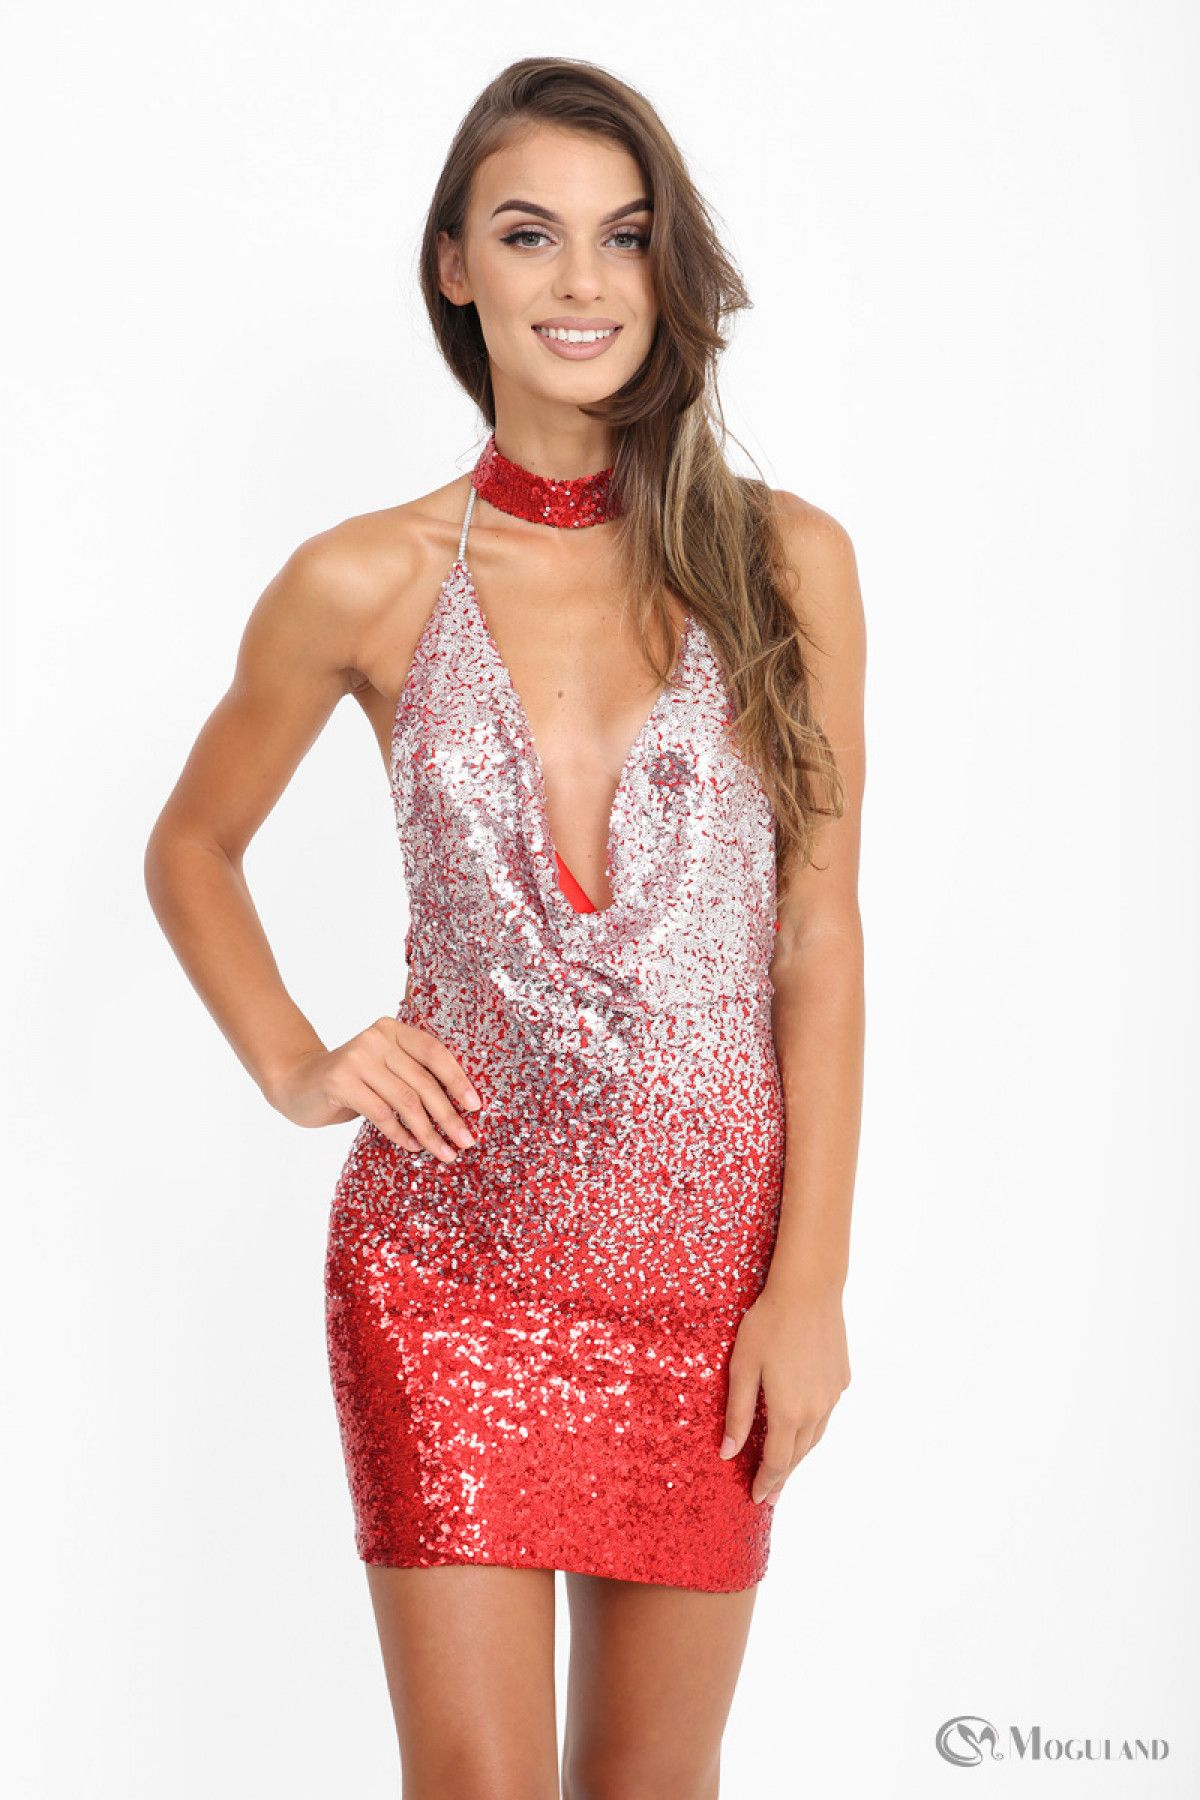 59e41a0ed2 Ladies red and silver ombre sequin cowl neck choker dress wholesale - Women s  Wholesale Clothing Supplier